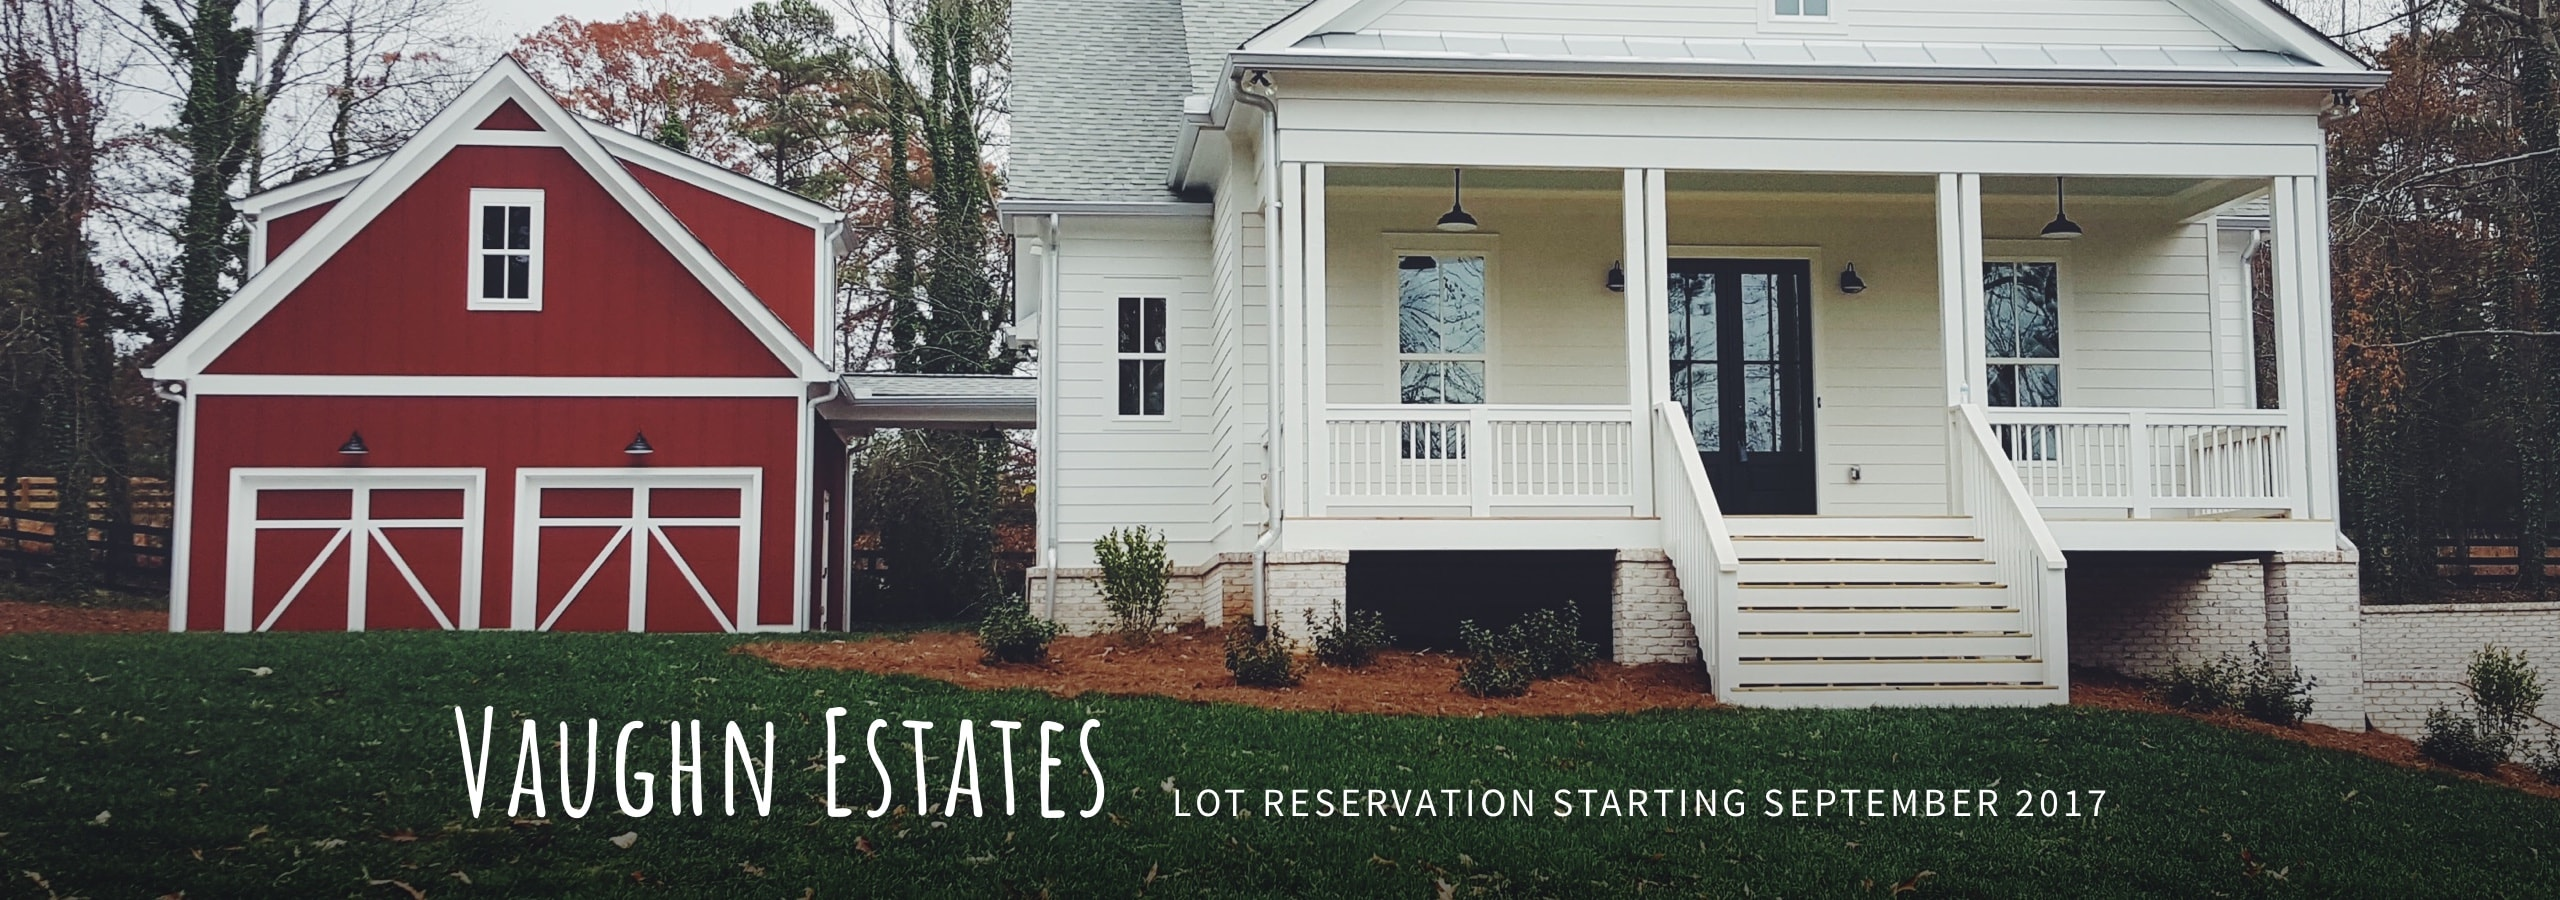 Vaughn Estates — Lot Reservations Starting September 2017